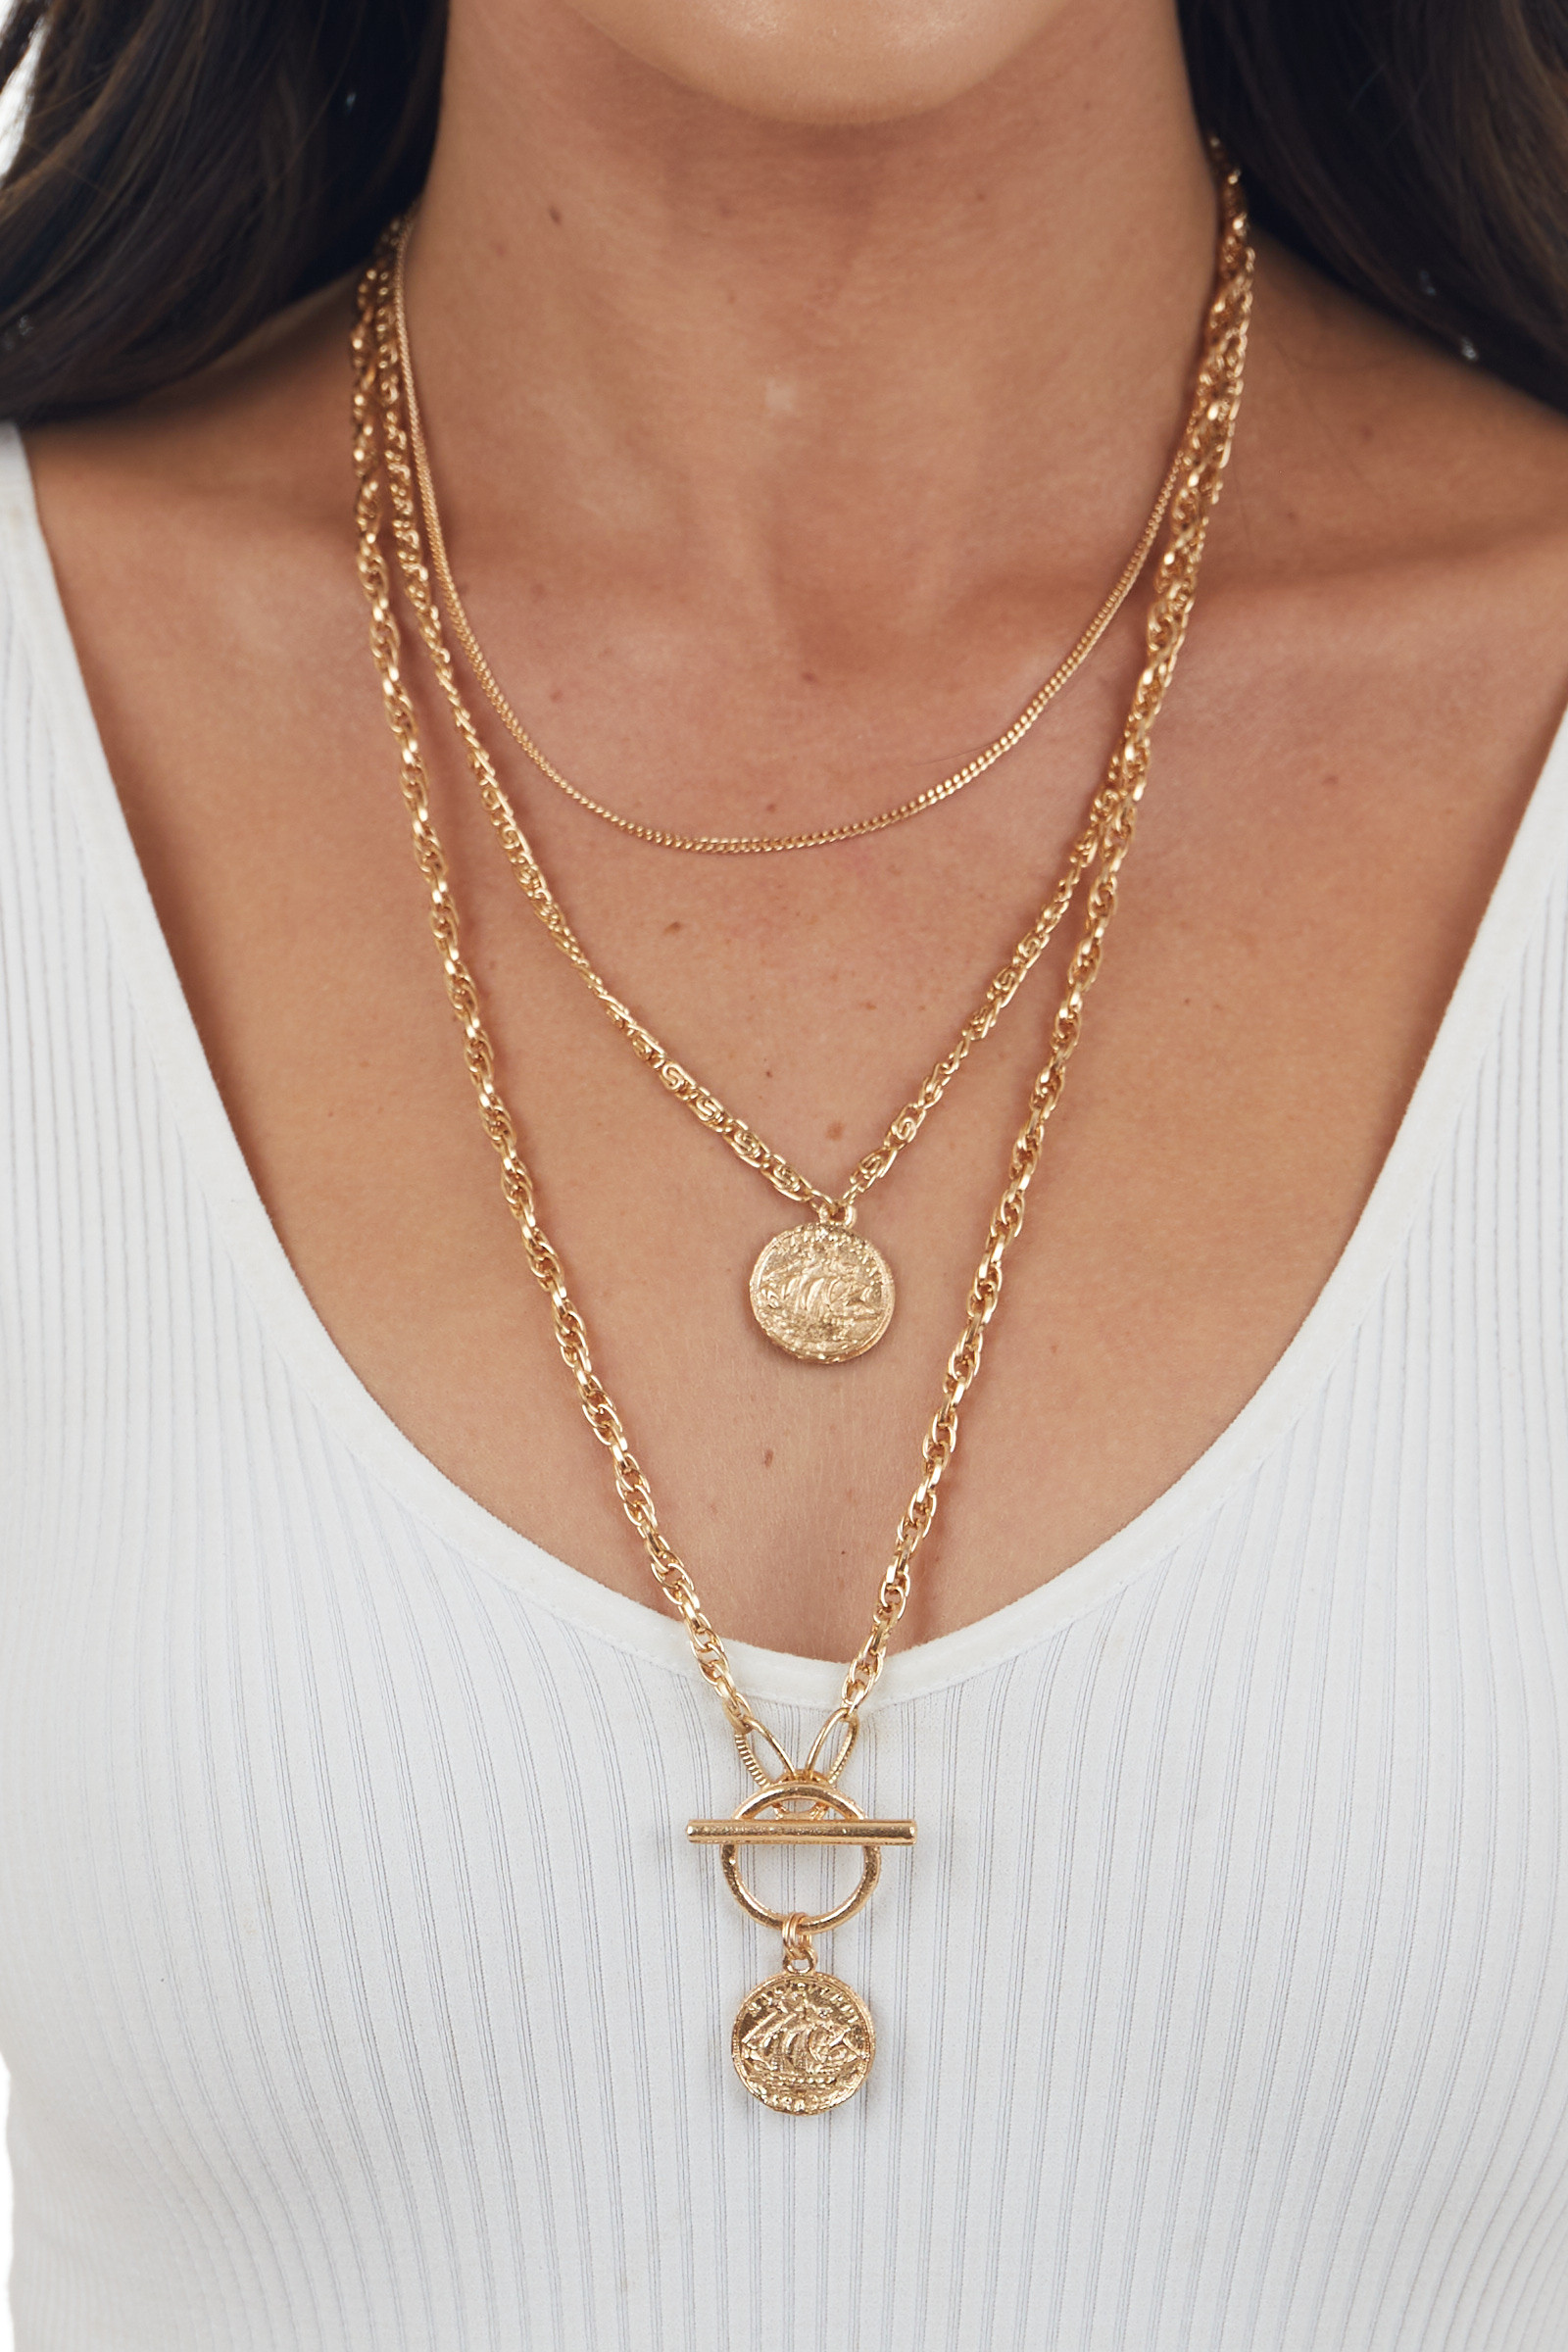 Gold Layered Chain Necklace with Coin Charms